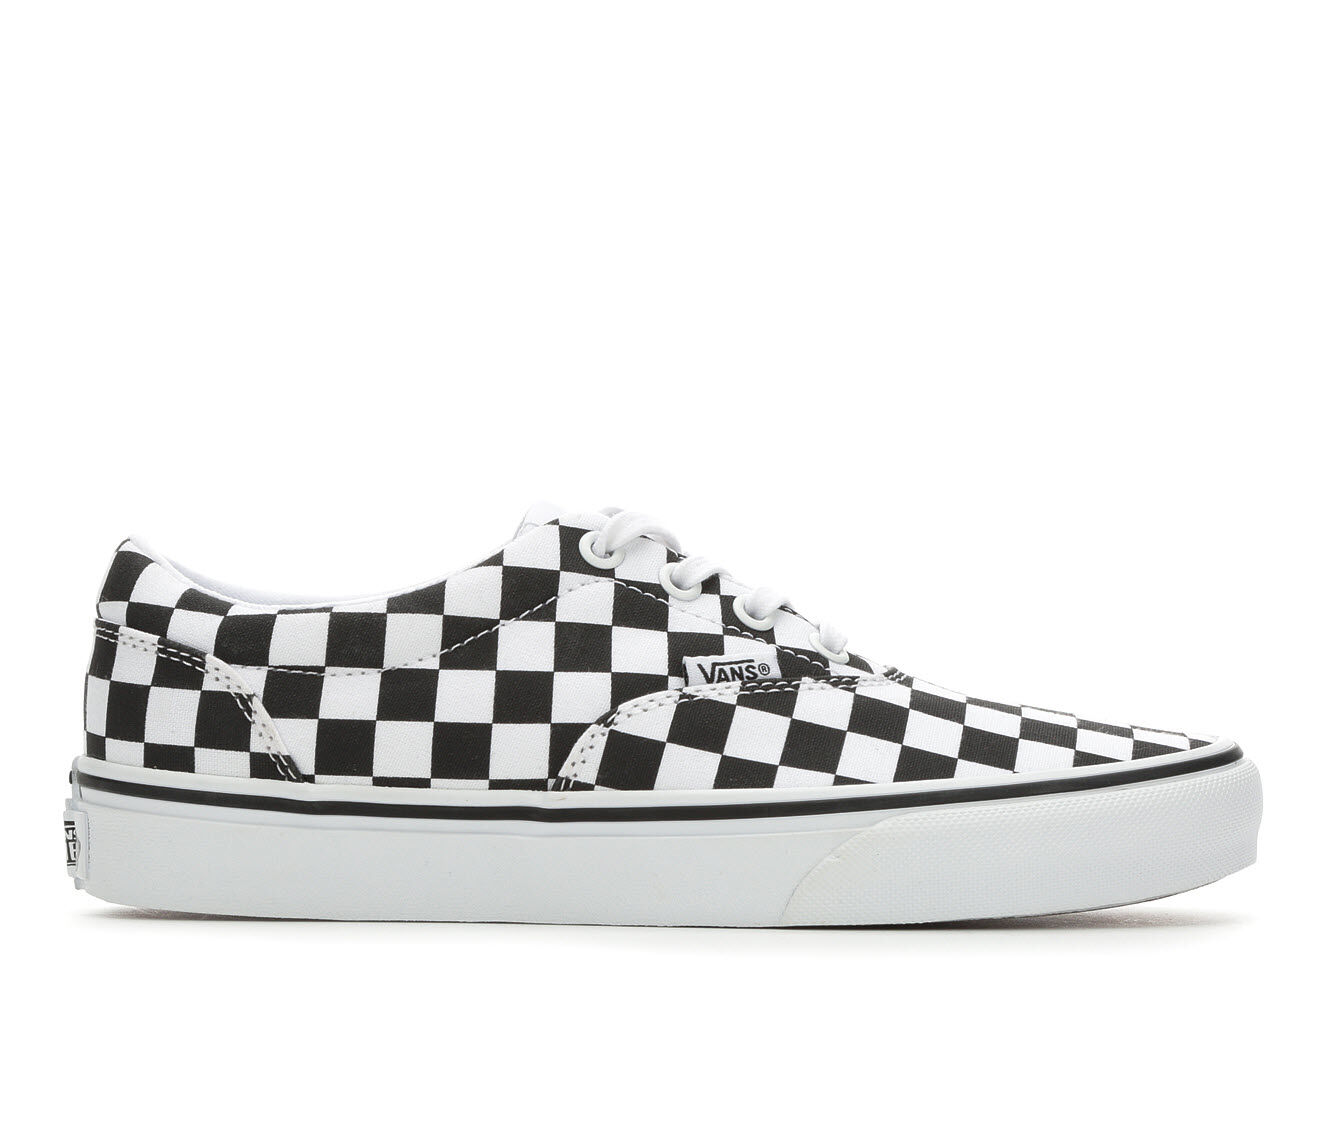 choose top quality Women's Vans Doheny Skate Shoes Blk/Wht Checker